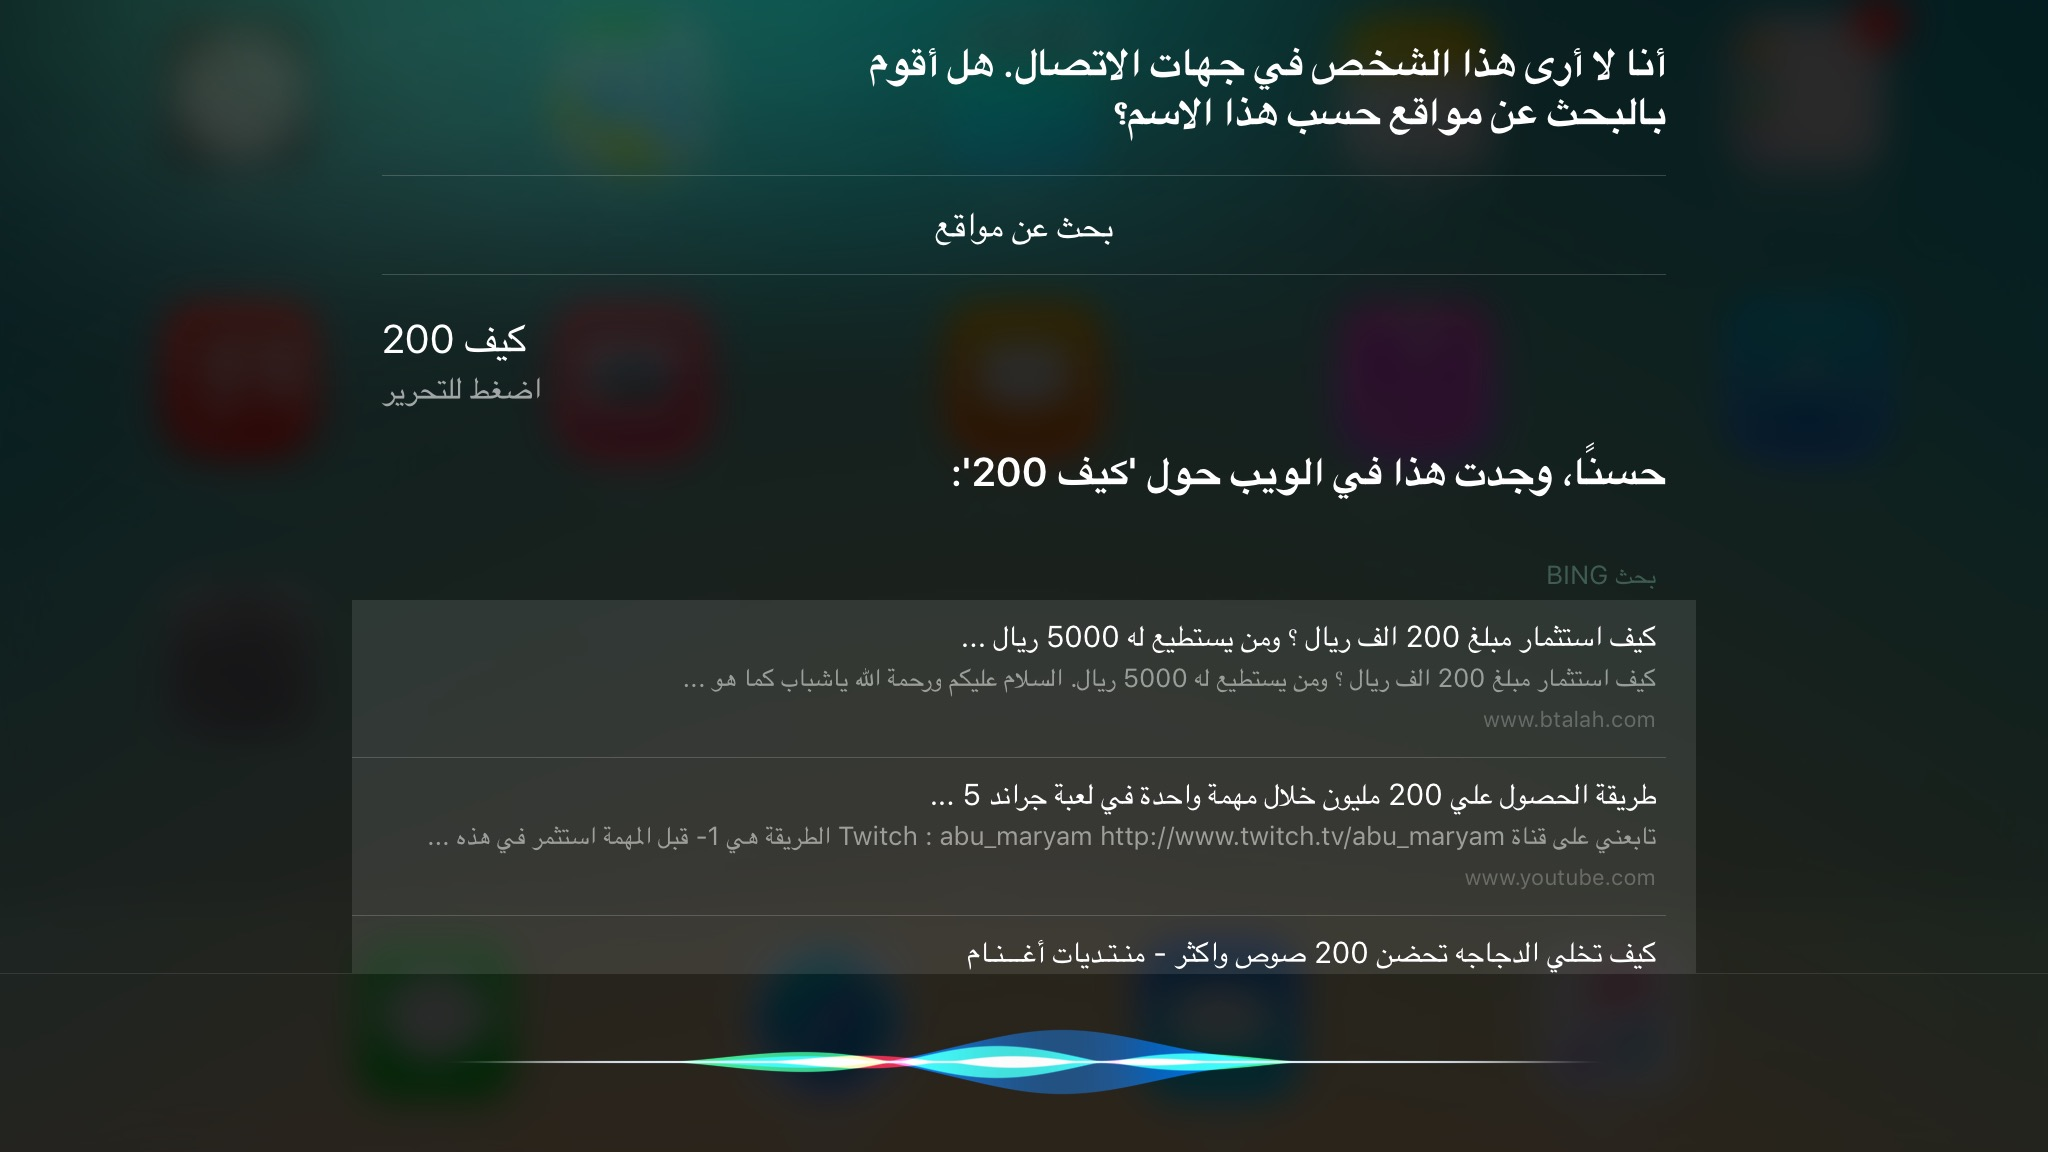 Siri iOS 9.2 Arabic support